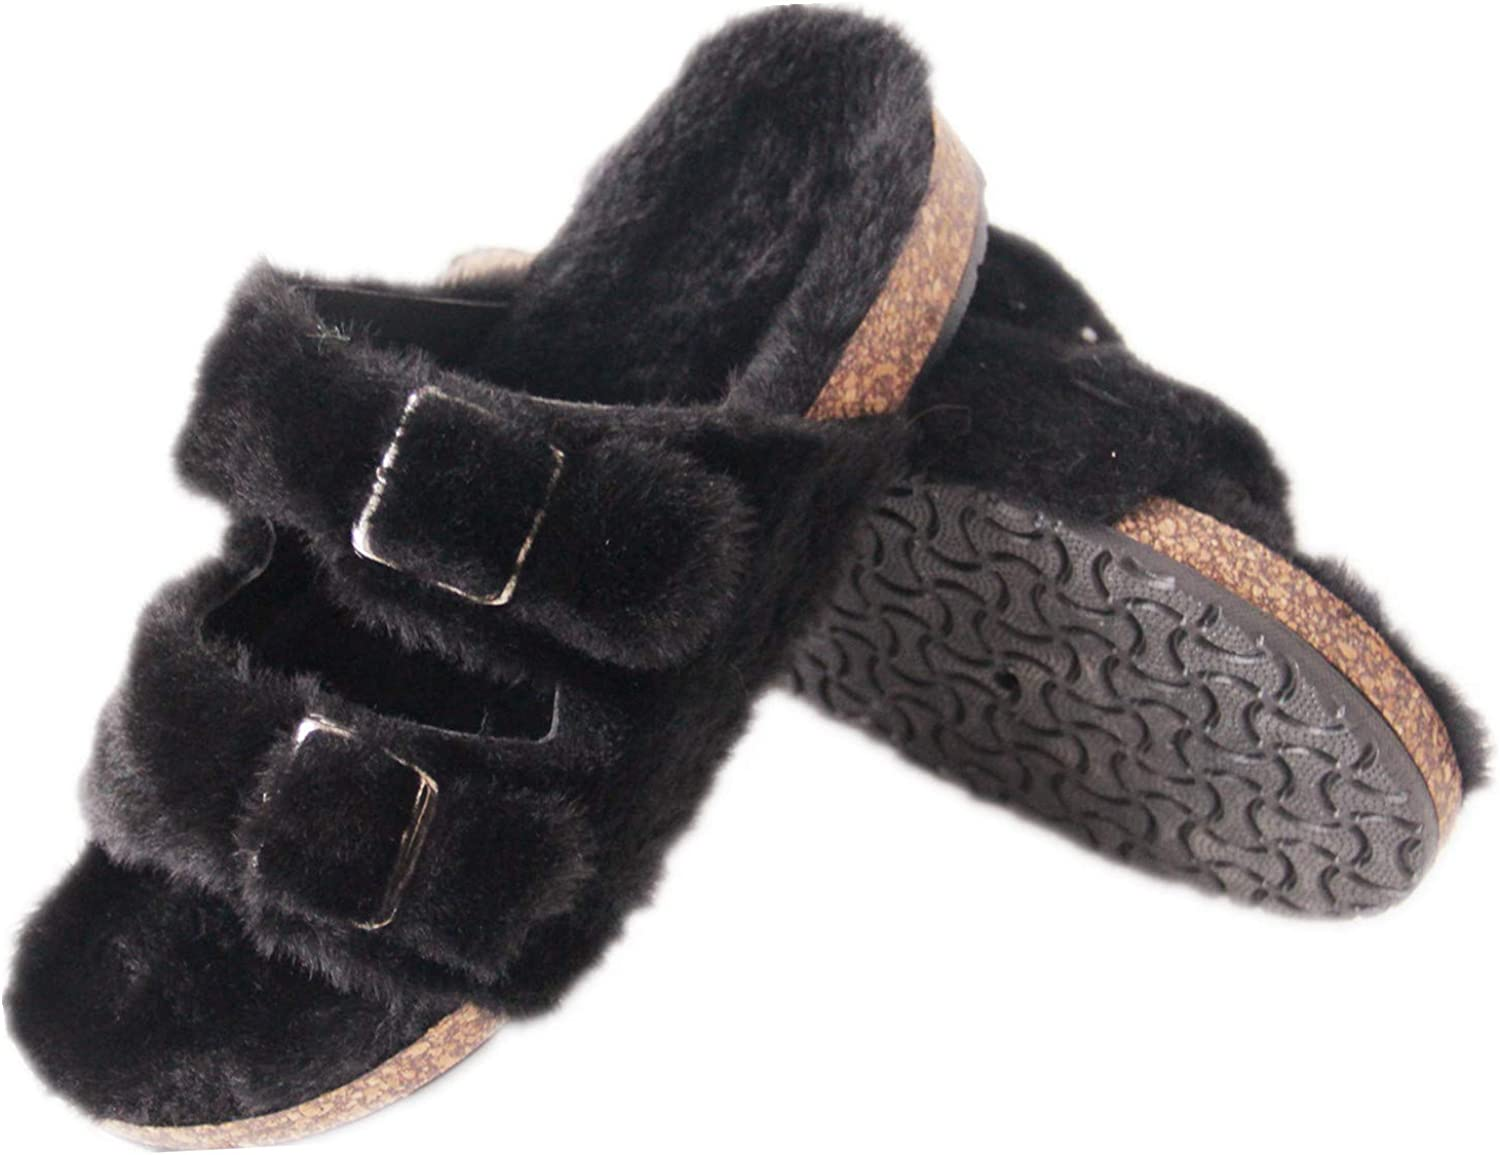 Saralis Women's Furry Slippers Fuzzy fur Slides Two Buckle Slide Sandals Cork Footbed Shoes Sandal